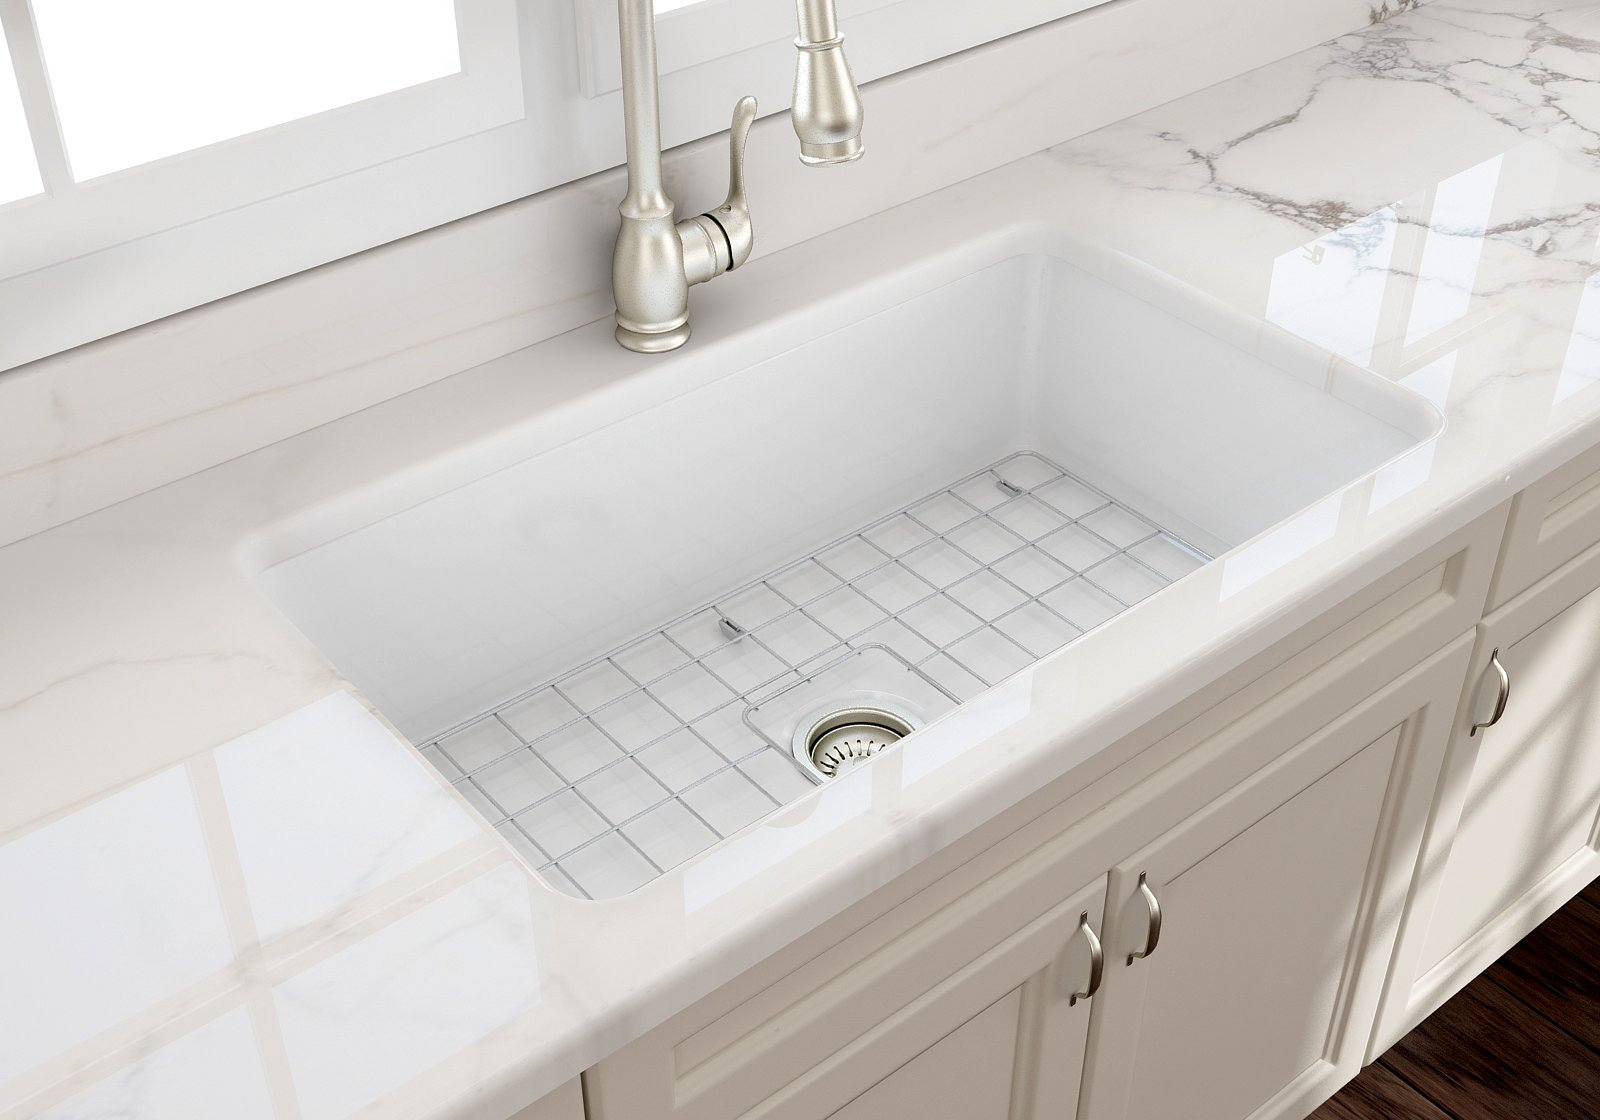 Image of: Sotto 32 Undermount Fireclay 32 Single Bowl Kitchen Sink White